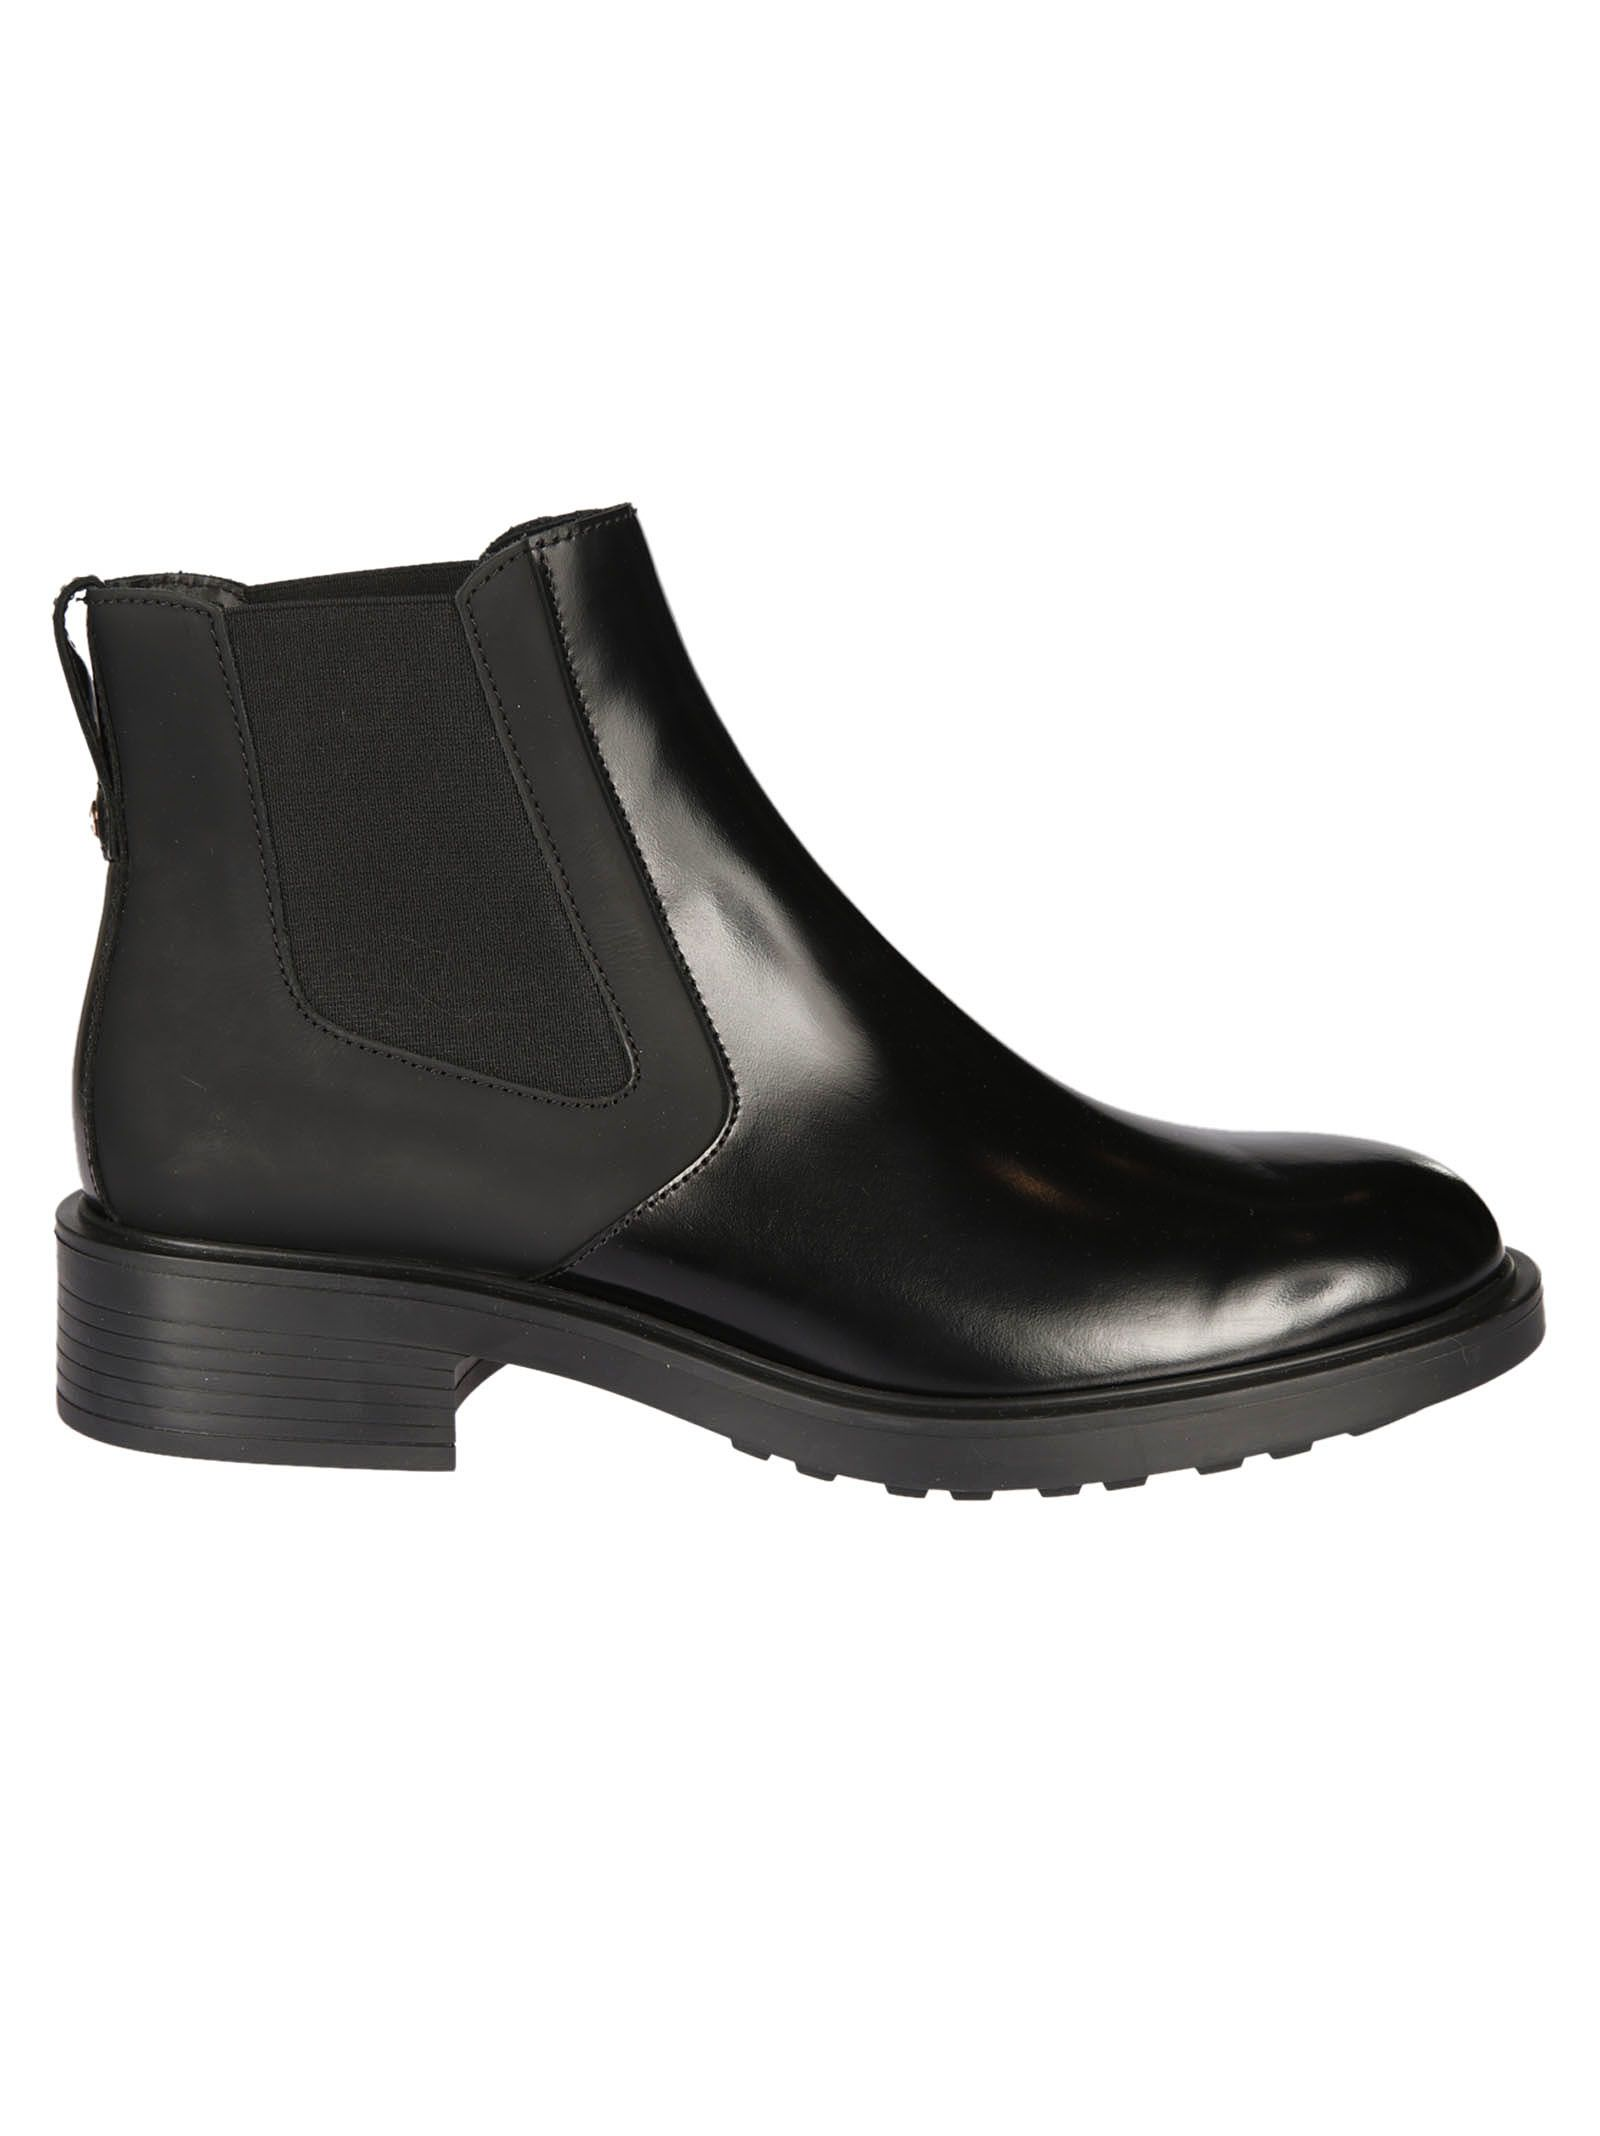 Professional Online Limited Edition Cheap Price Hogan H332 Ankle Boots Sale Professional Popular View Sale Online Uo6lx